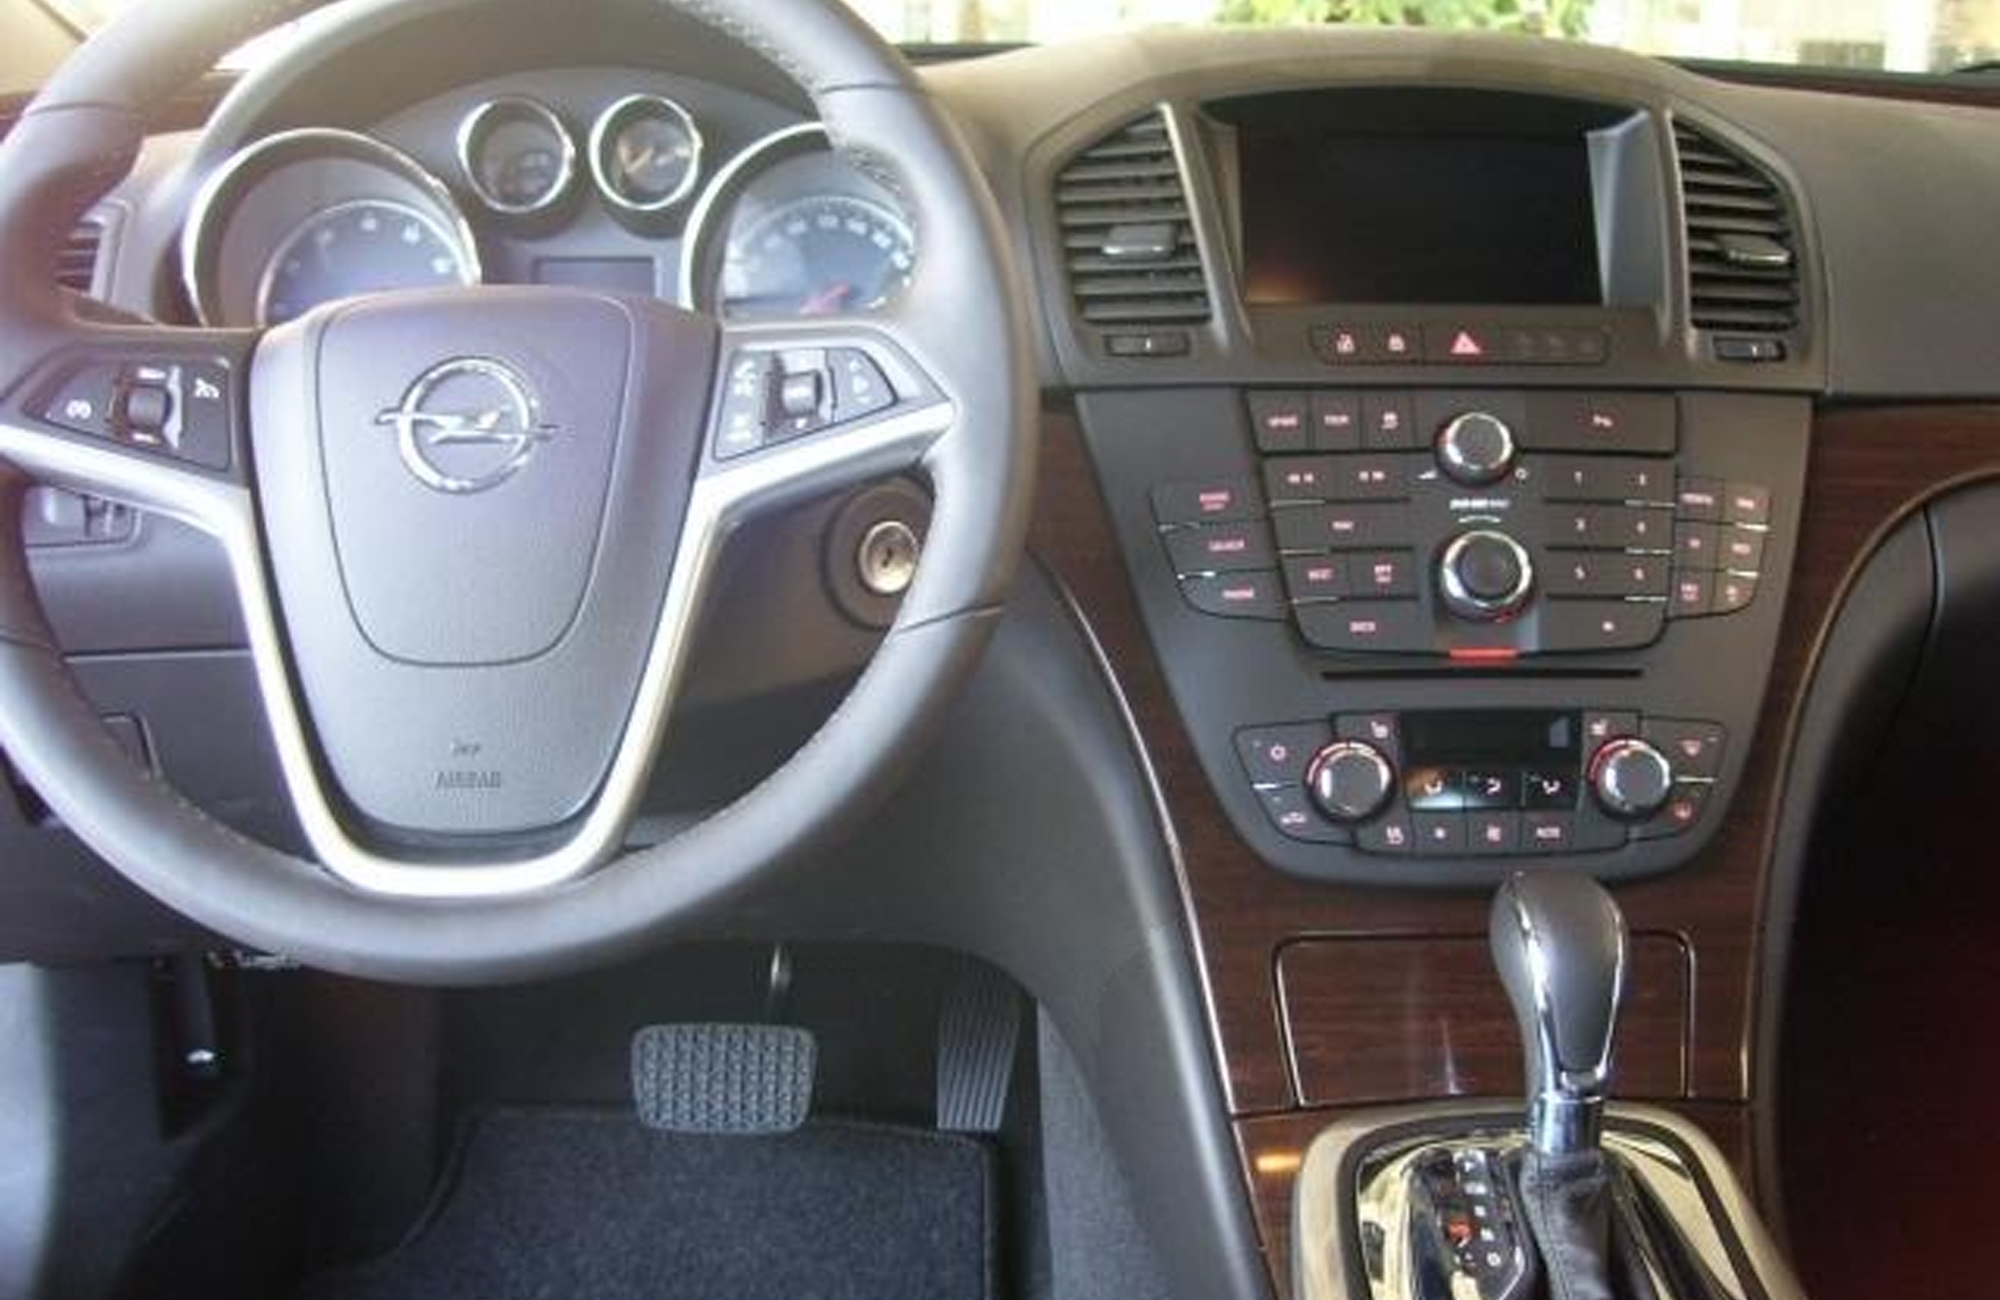 Http Commons Wikimedia Org Wiki File Opel Insignia Interior Jpg